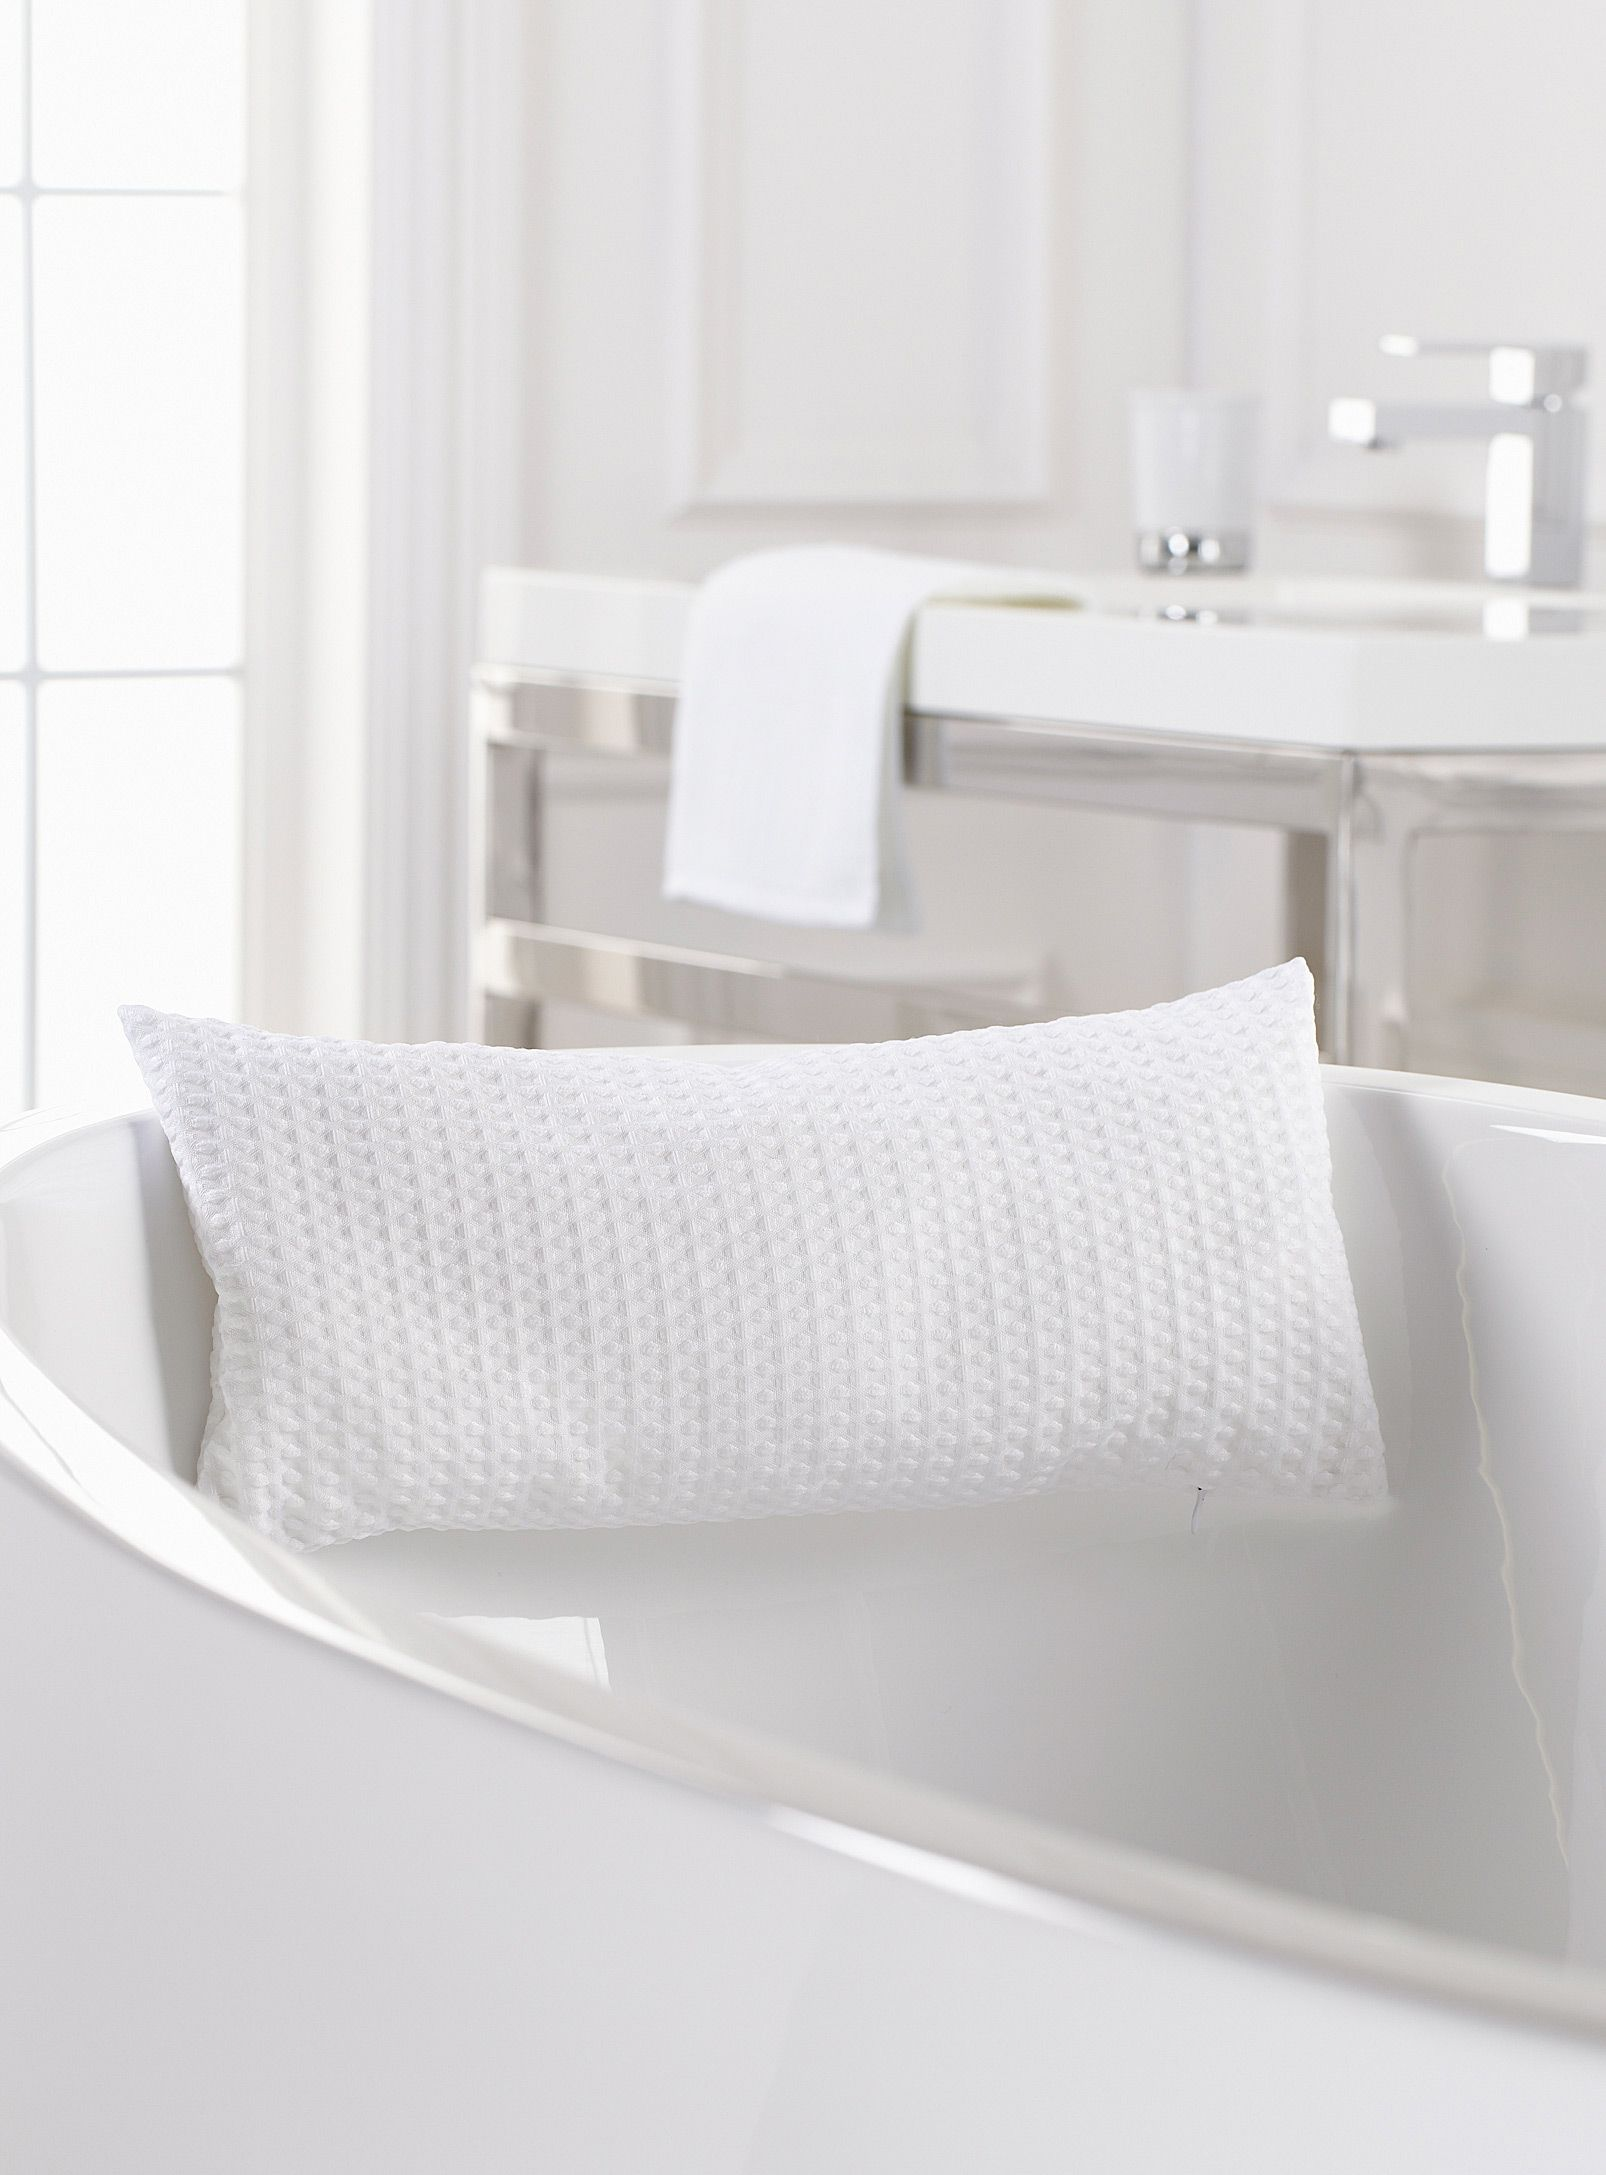 Shop bathroom accessories - Shop Bathroom Accessories Accessory Sets Online In Canada Simons